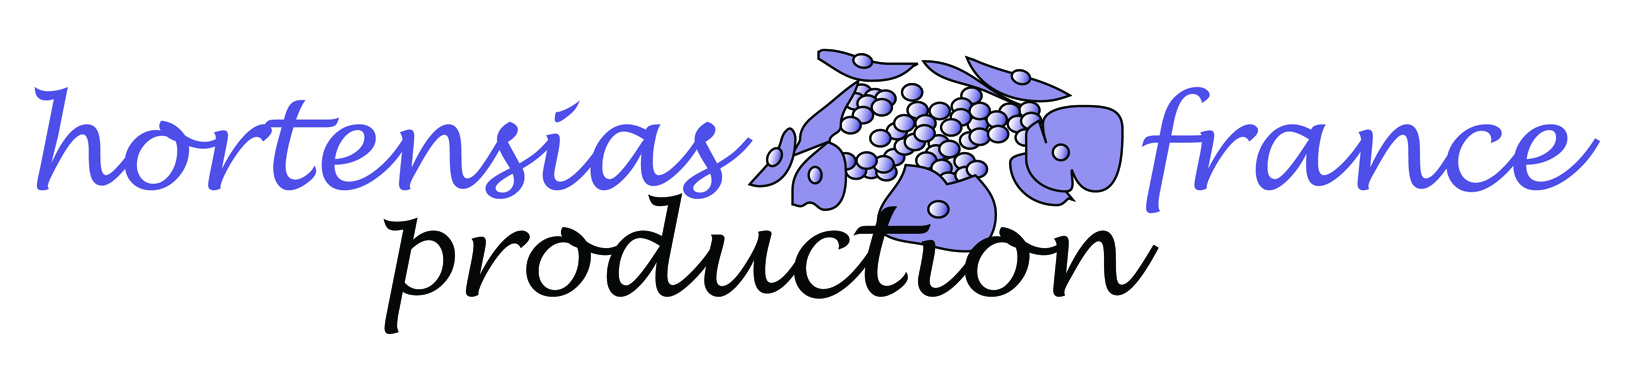 Logo hortensias production